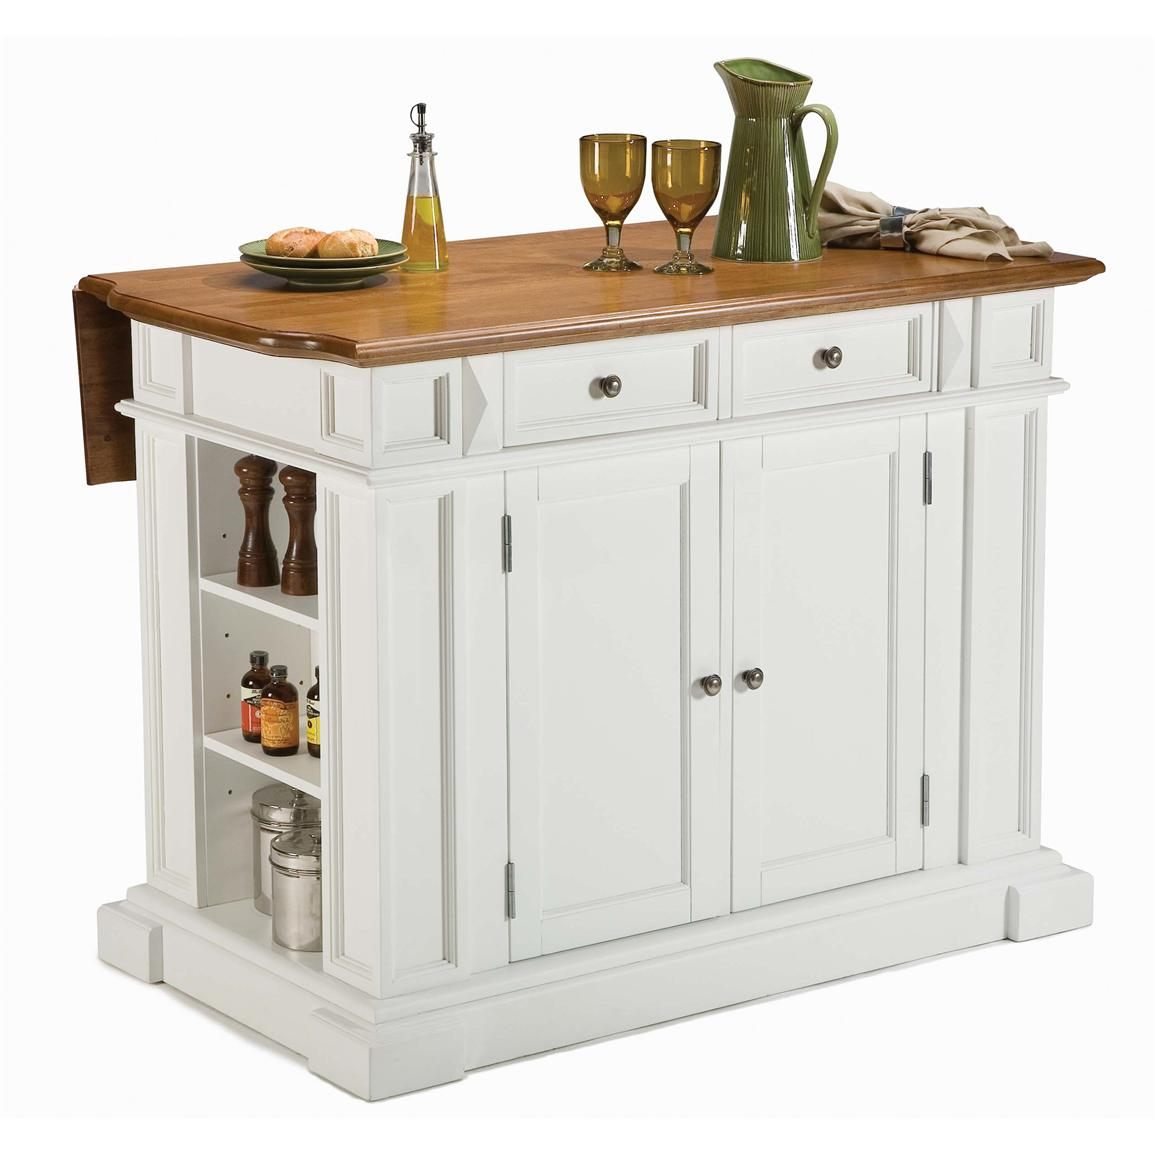 Home styles kitchen island with breakfast bar 172165 kitchen dining at sportsman 39 s guide - Mobile kitchen island plans ...